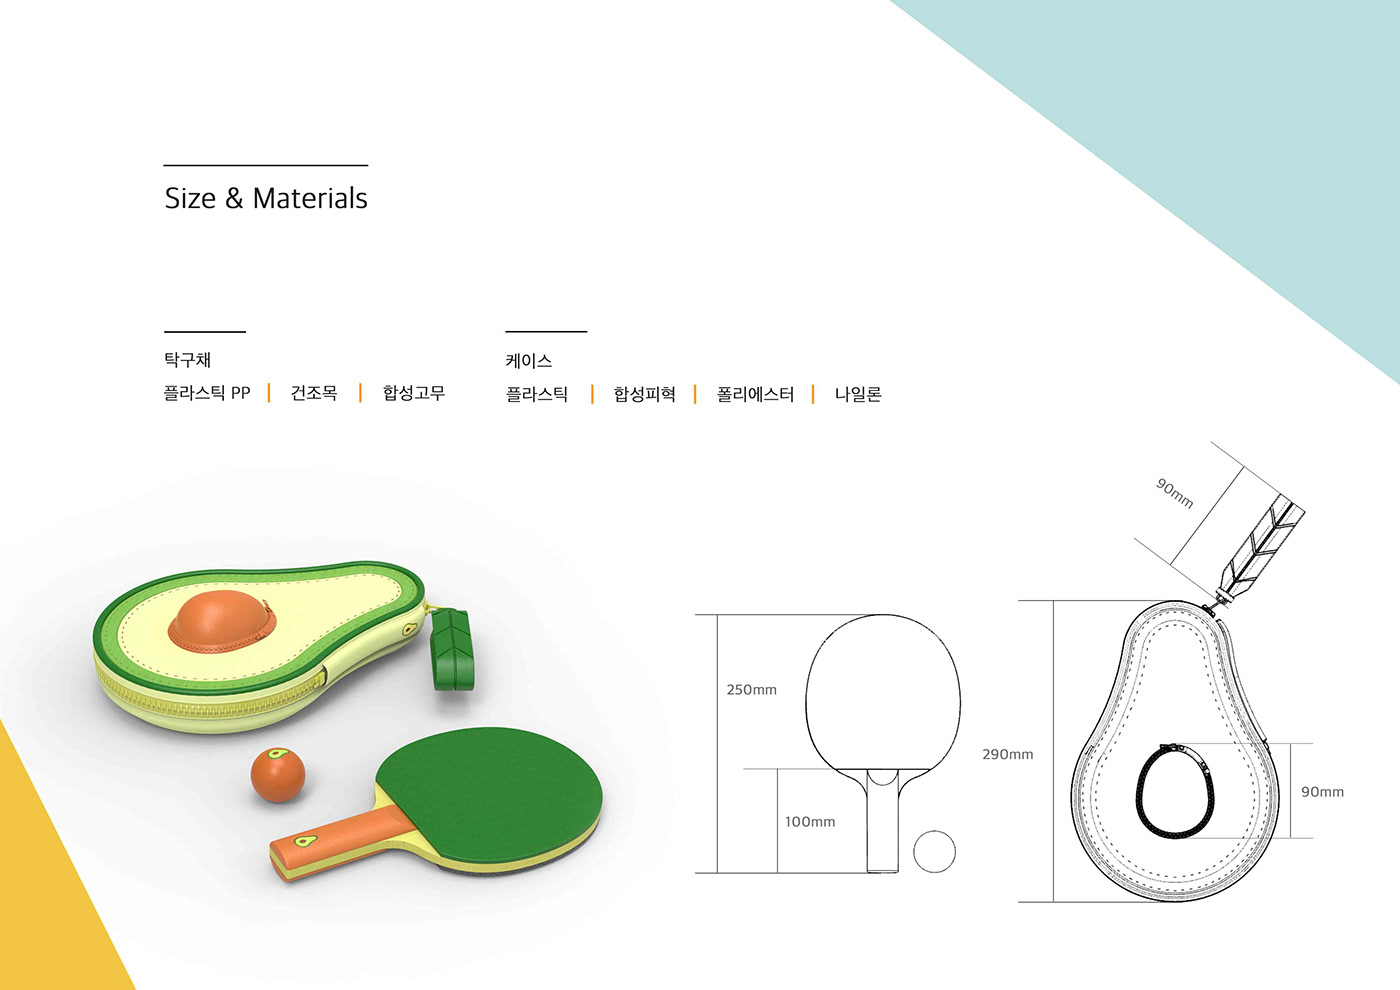 Avocado Ping Pong On Behance Table Tennis Rackets Racket Diagram Takes Balls Using Zipper Also You Can Put A Paddle One Side And Your Belongings The Other Besides Leaf Shaped Hand